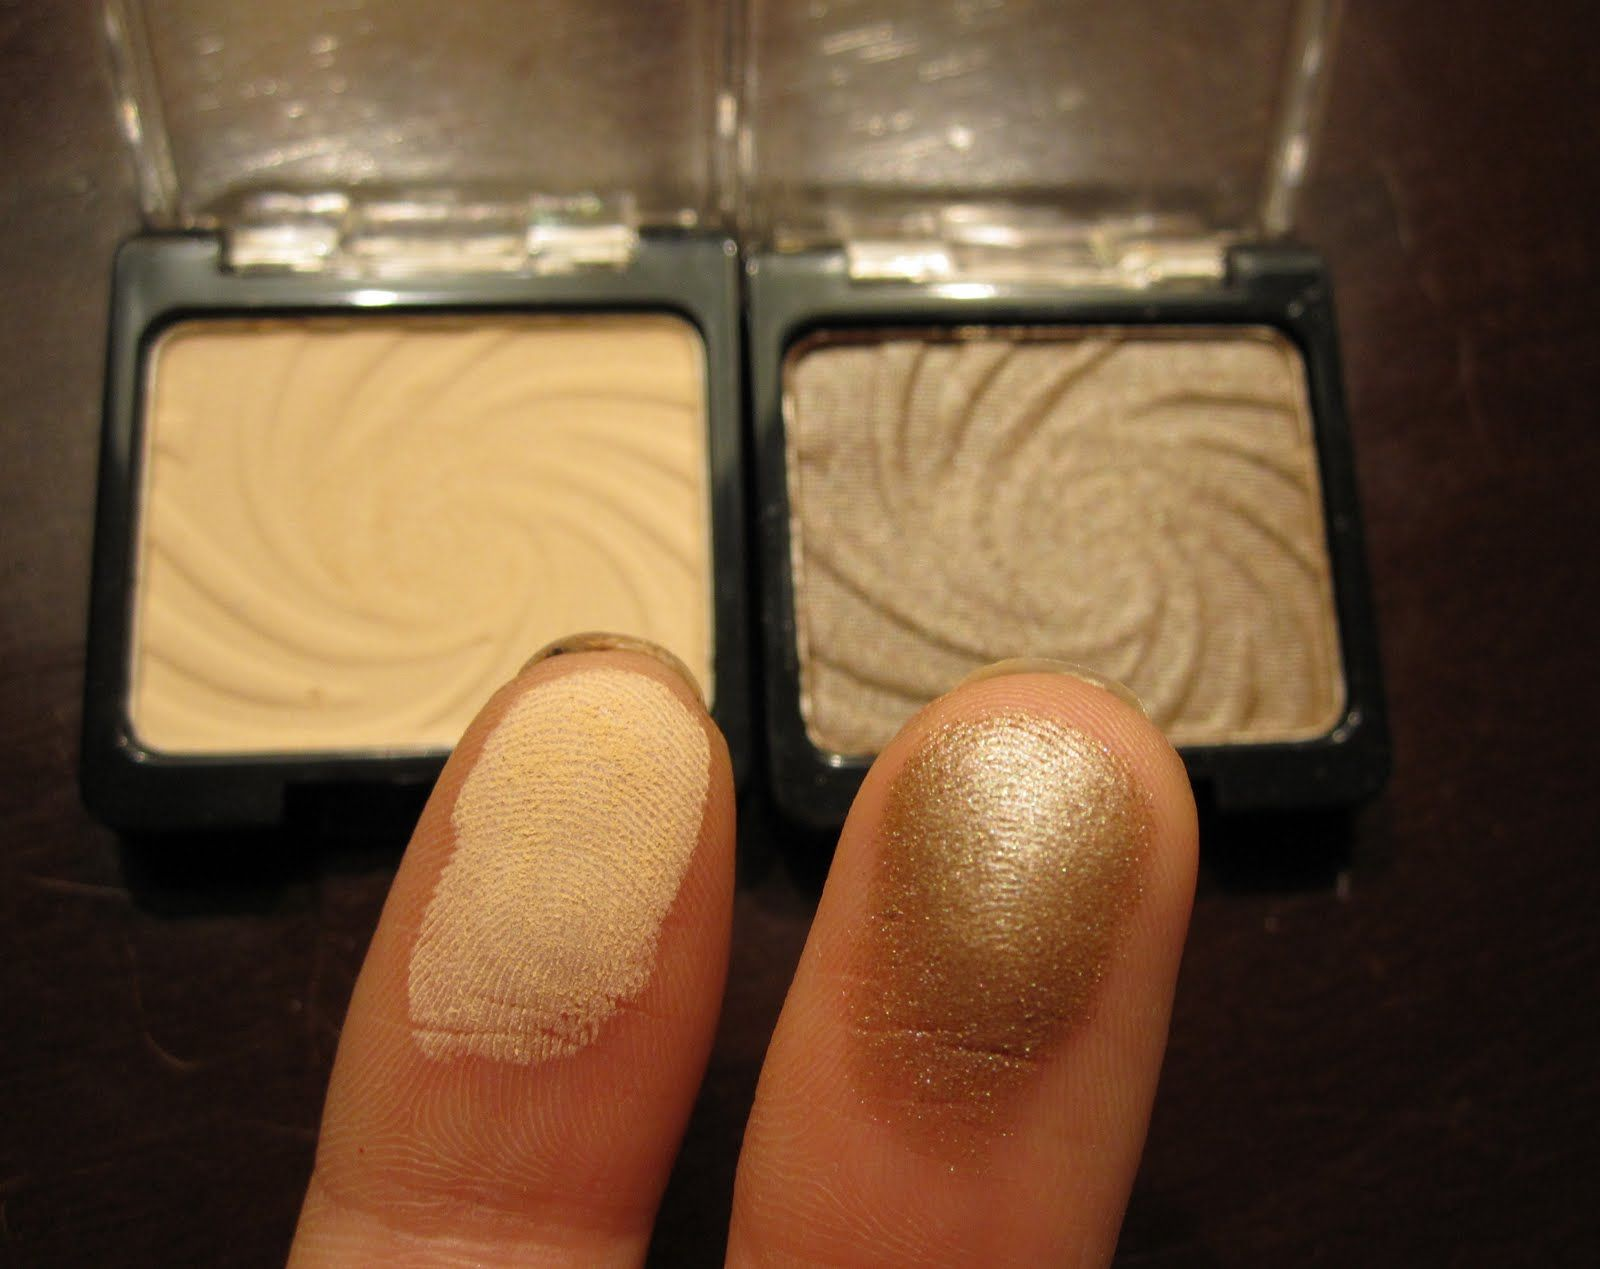 A Touch Of Gloss Wet N Wild Color Icon Eyeshadow Single Review Wet N Wild Eyeshadow Eyeshadow Collection Wet N Wild